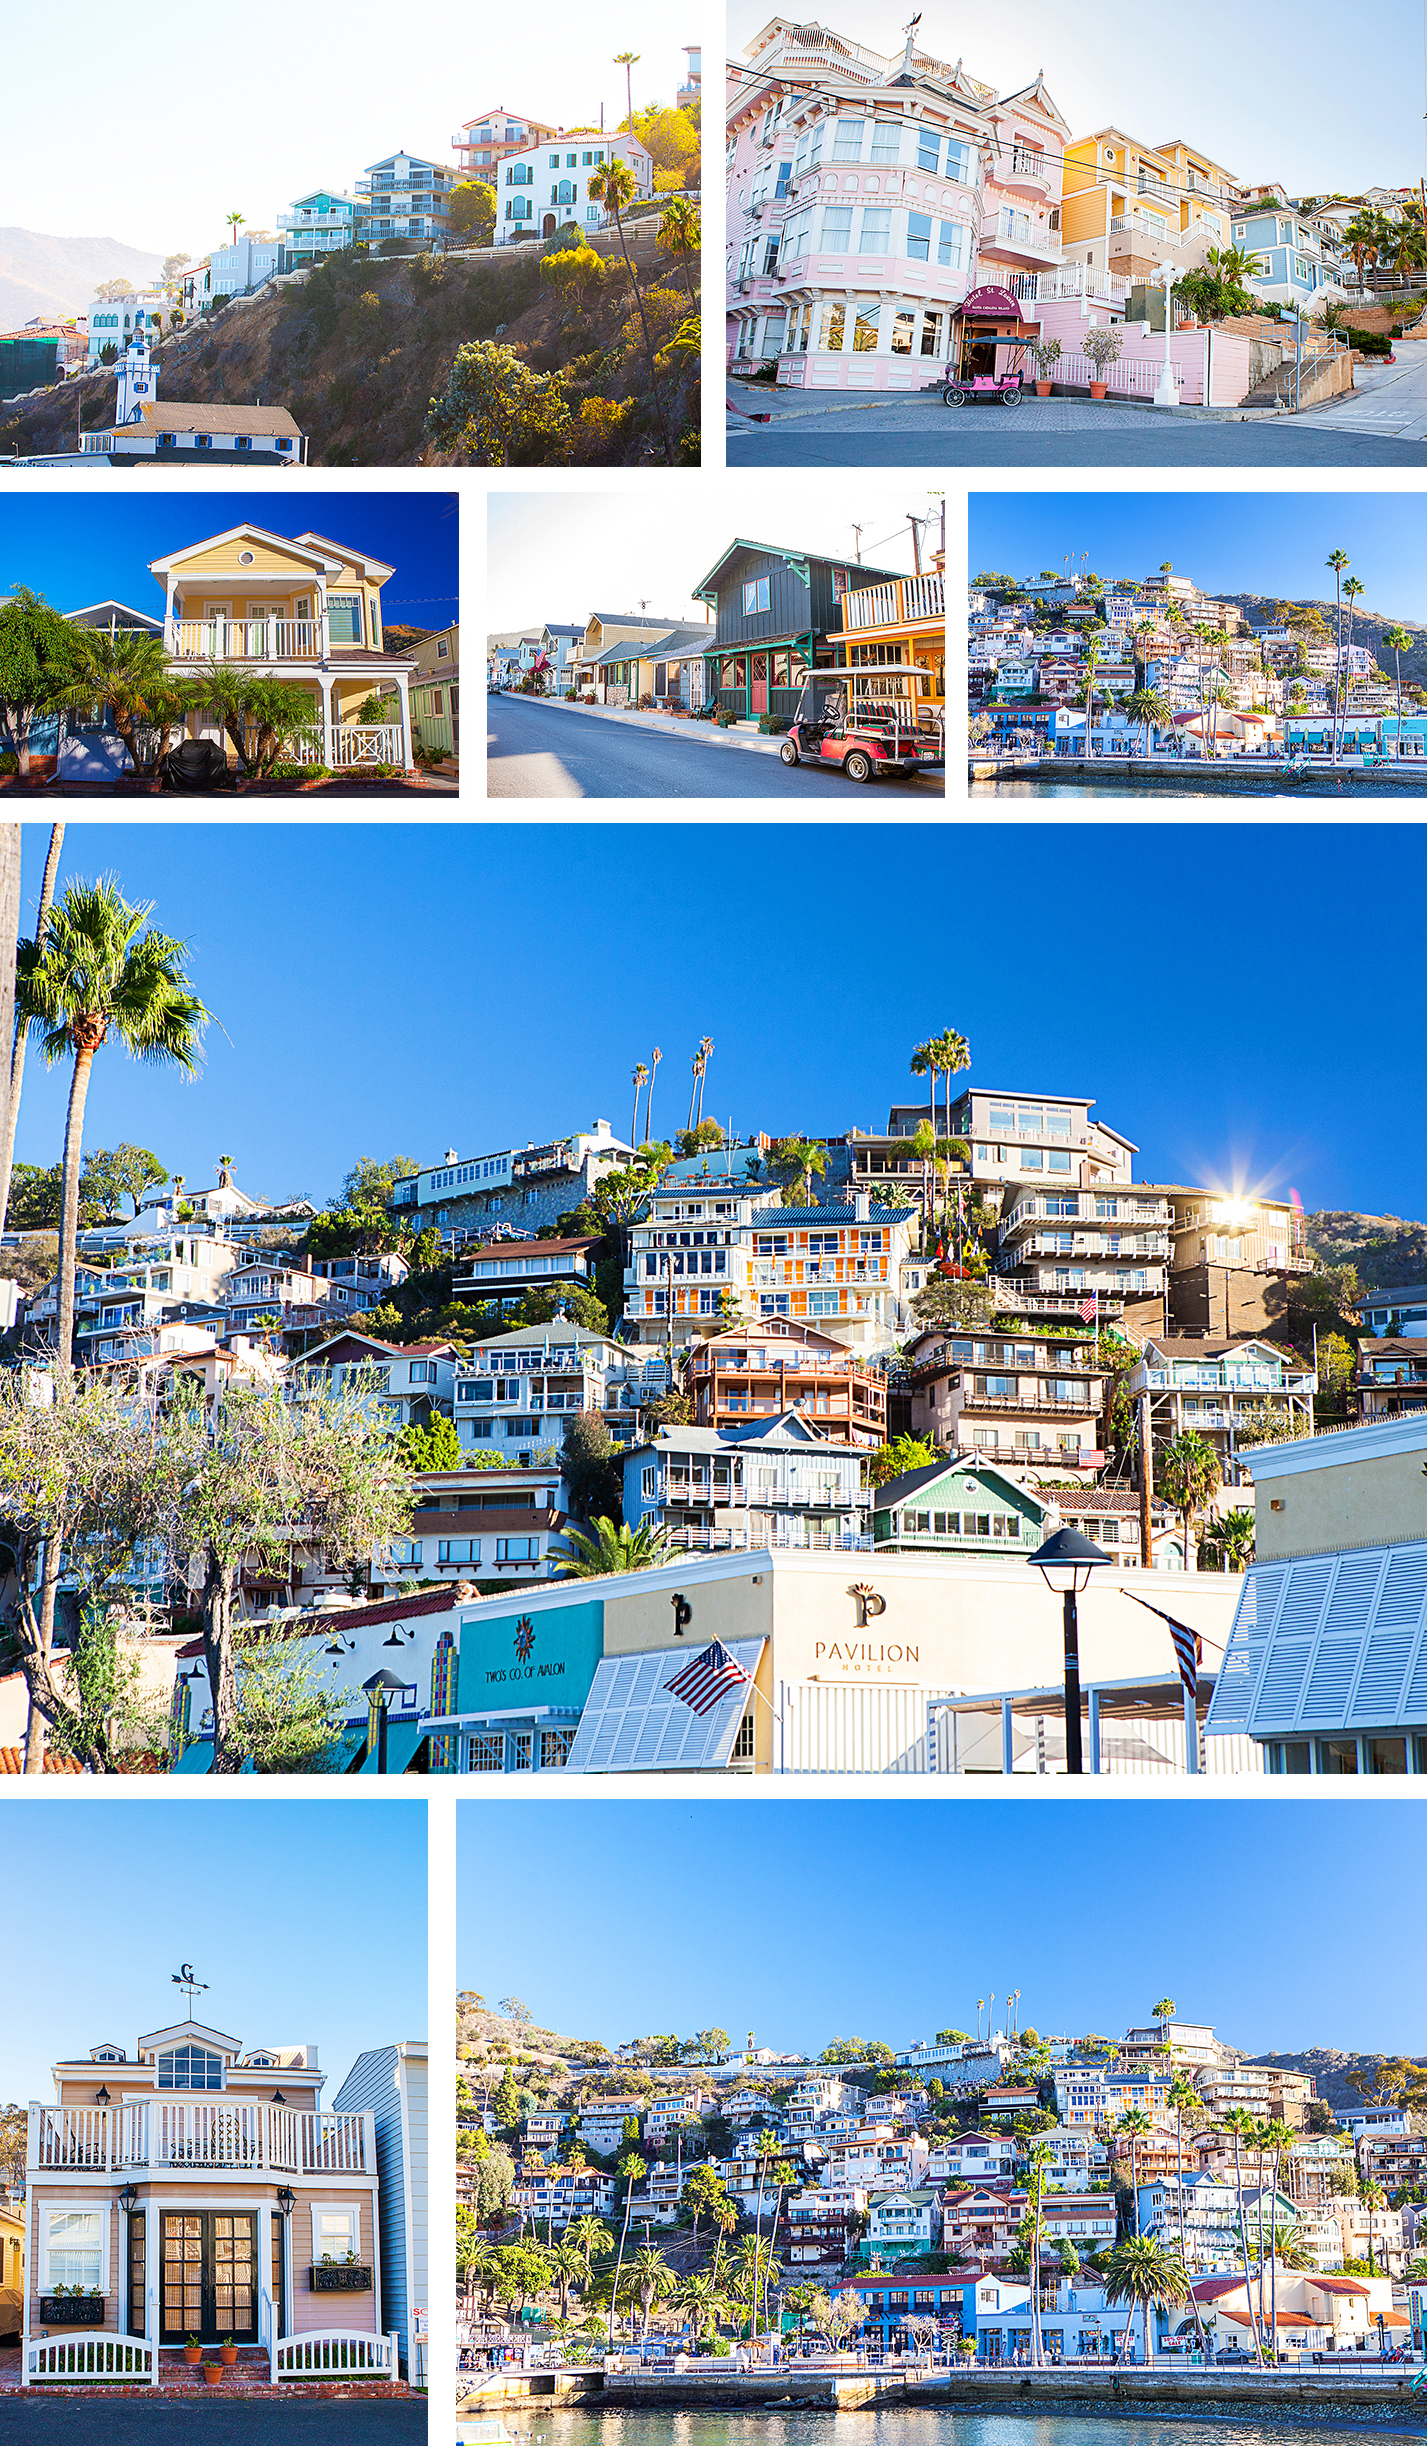 How Long For A Day Tour Catalina Island